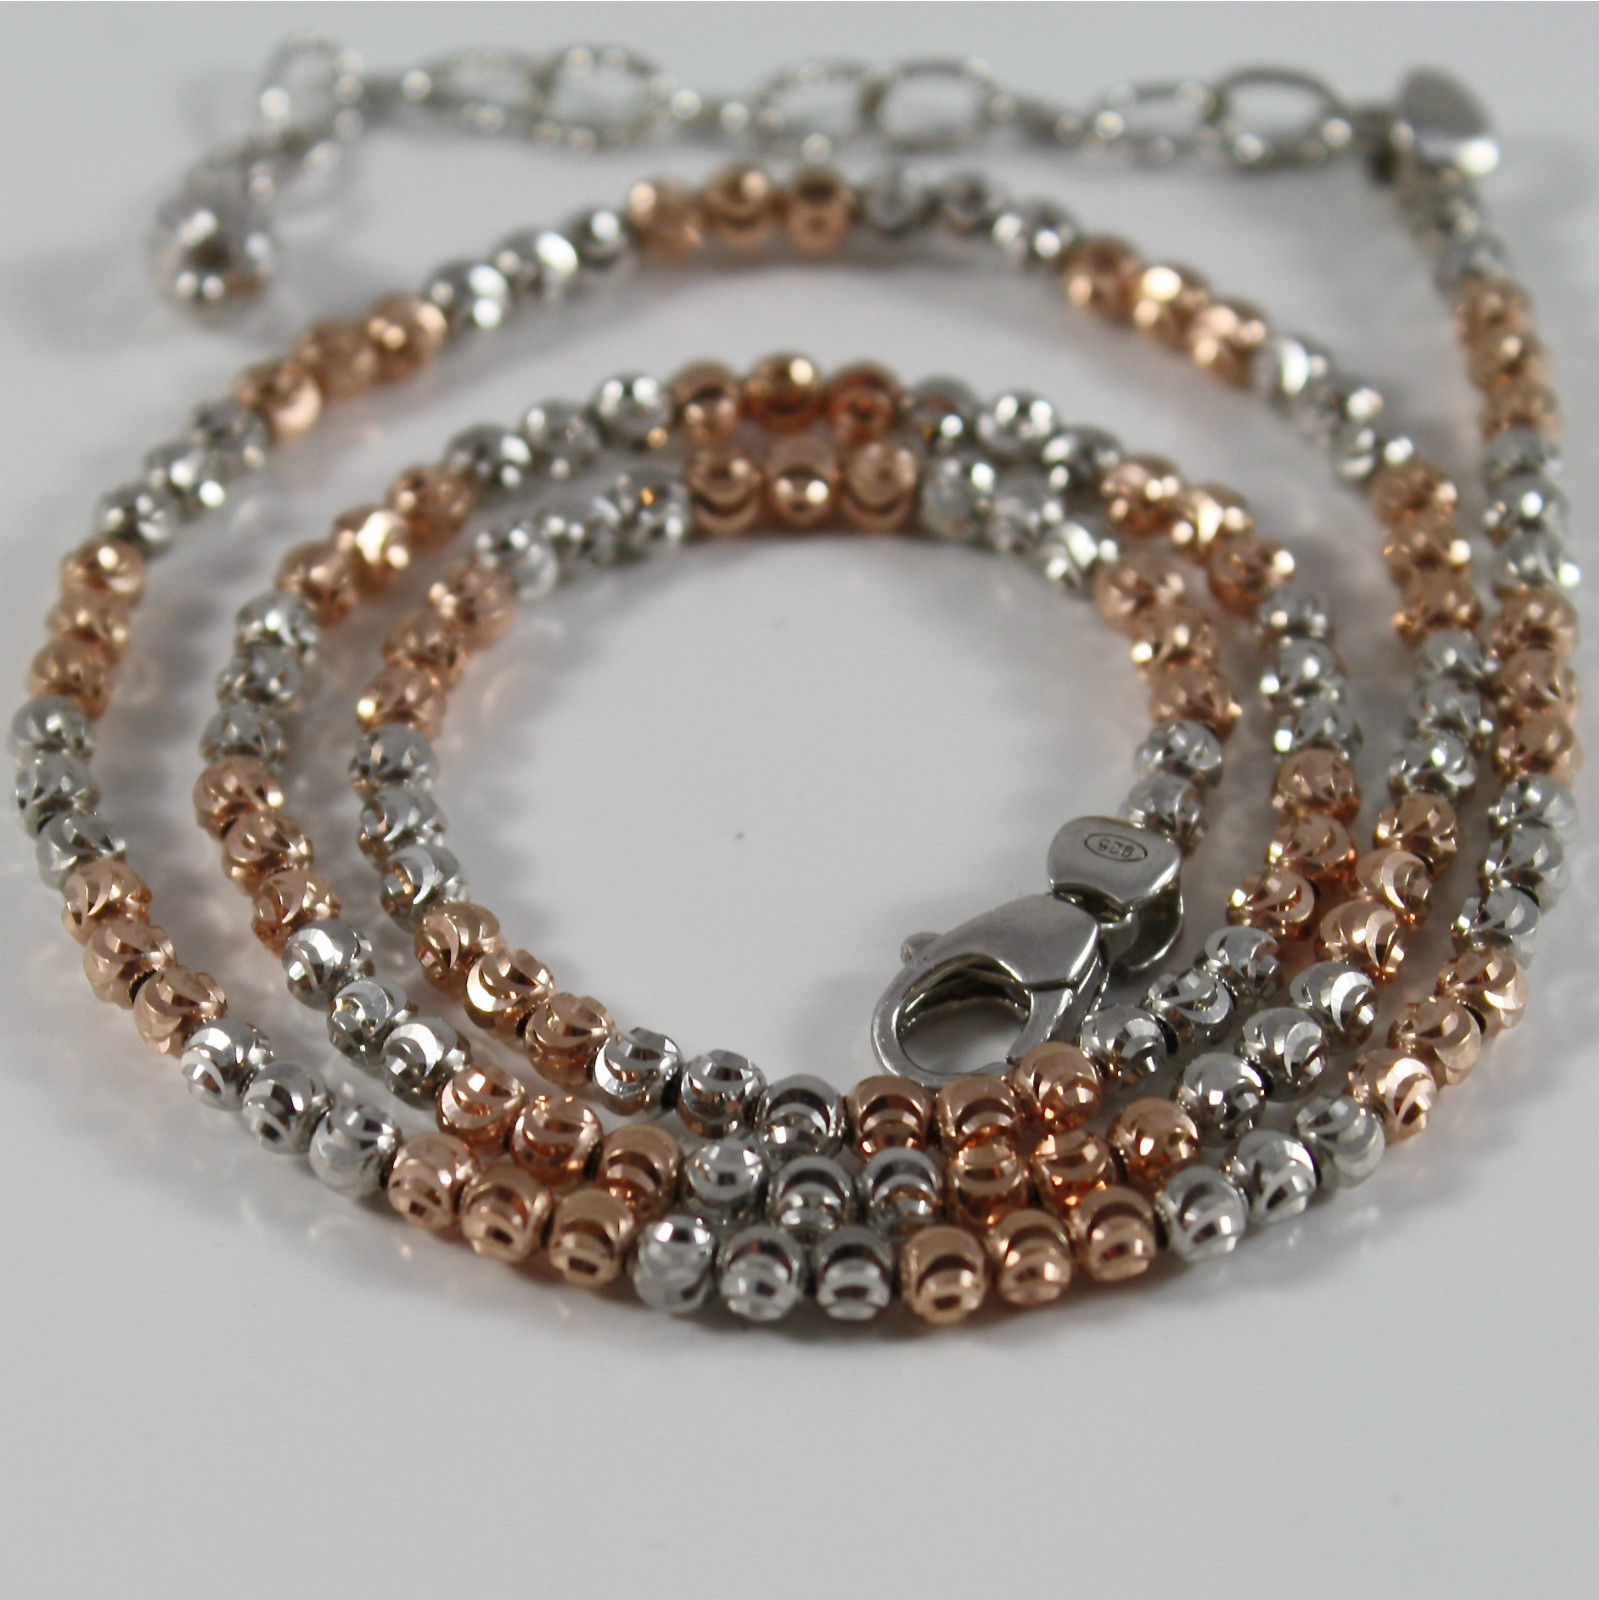 925 RODIUM SILVER NECKLACE OFFICINA BERNARDI FACETED BALLS MADE ITALY ROSE GOLD